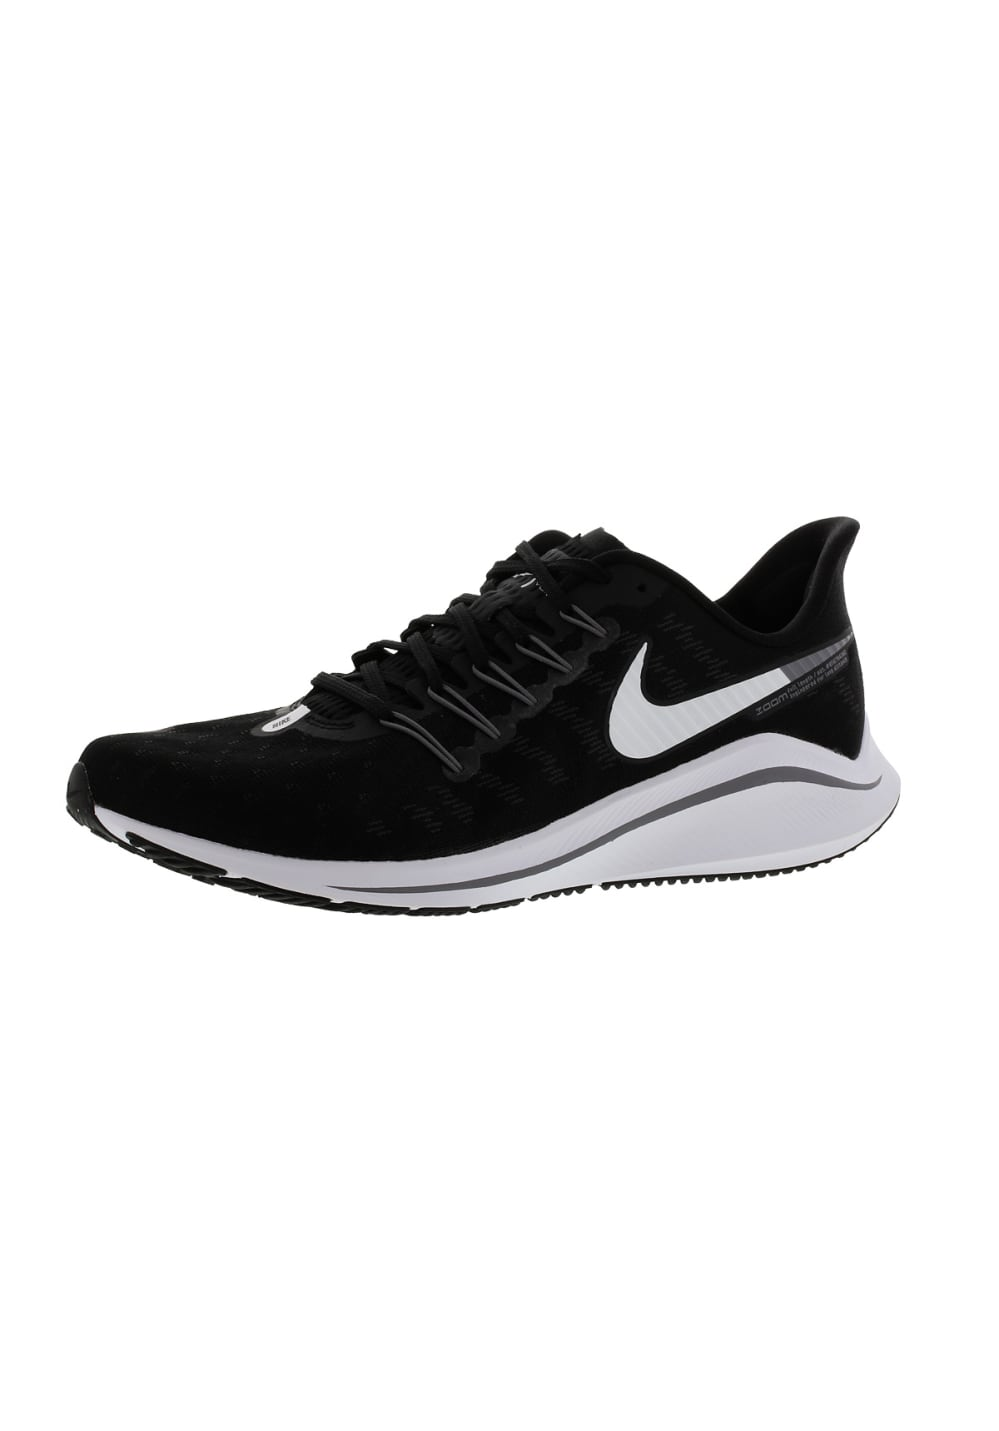 721515b6 Nike Air Zoom Vomero 14 - Running shoes for Men - Black | 21RUN